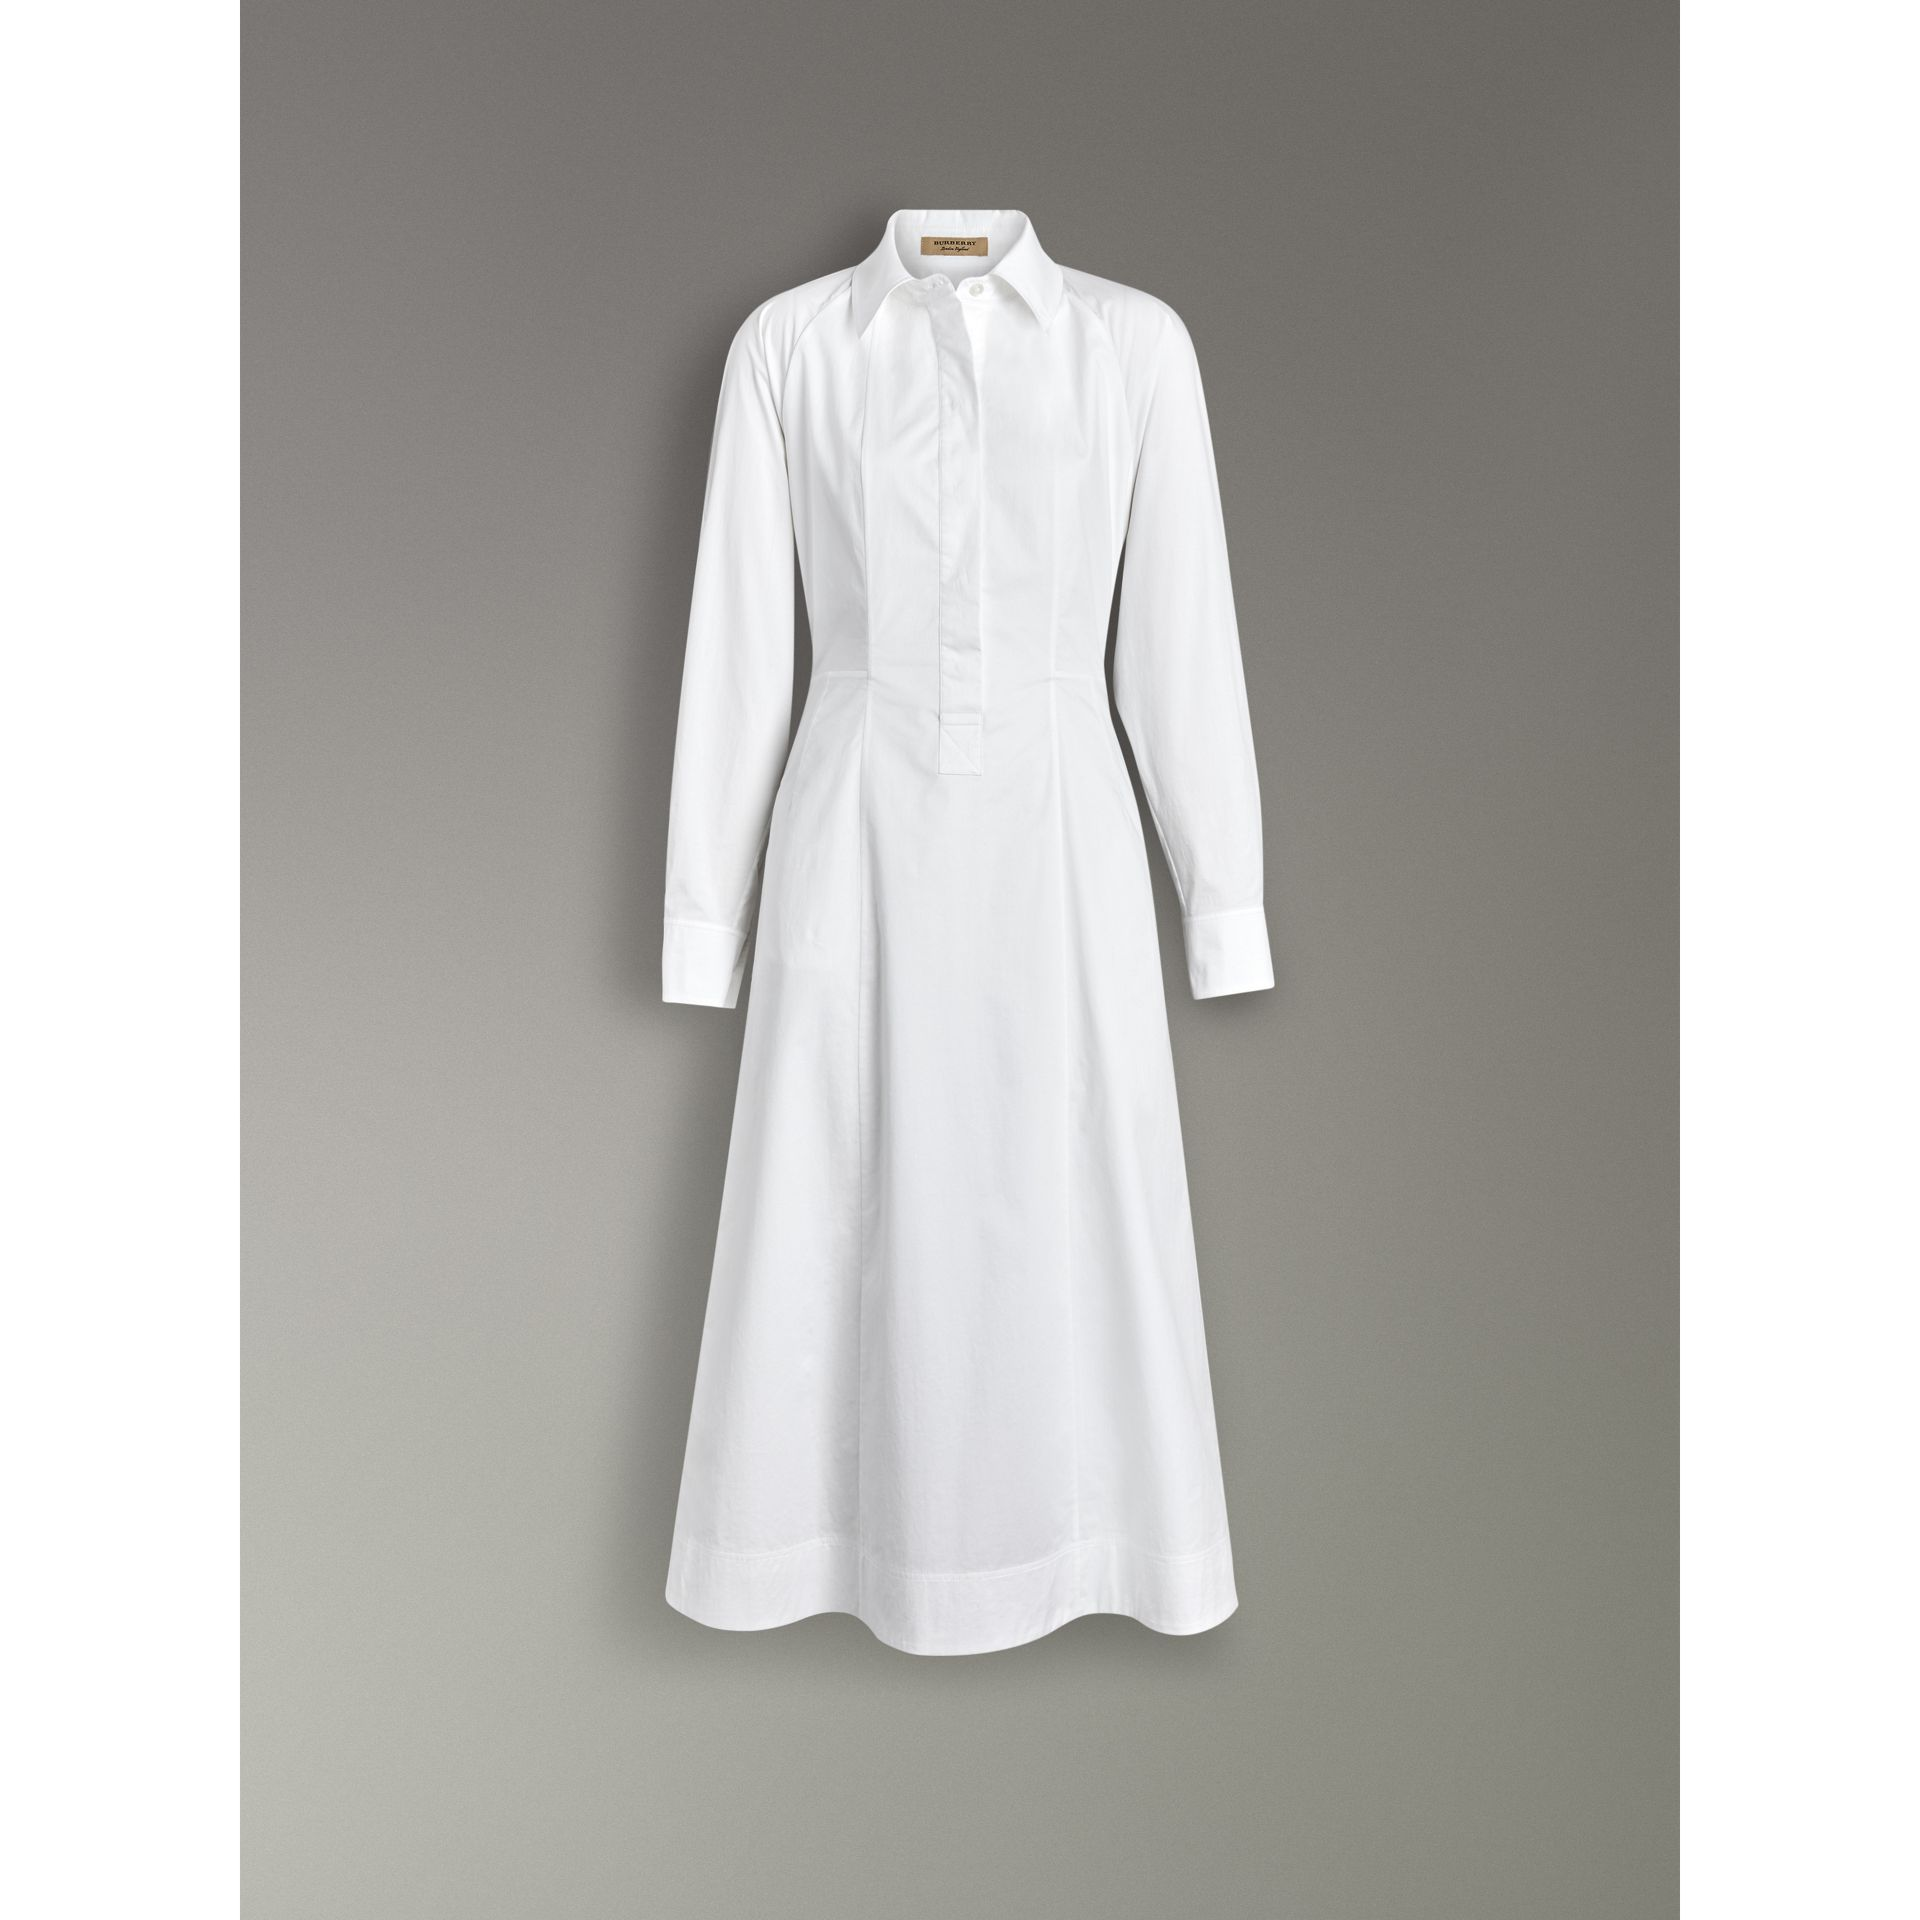 Panelled Stretch Cotton Shirt Dress in White - Women | Burberry Australia - gallery image 3